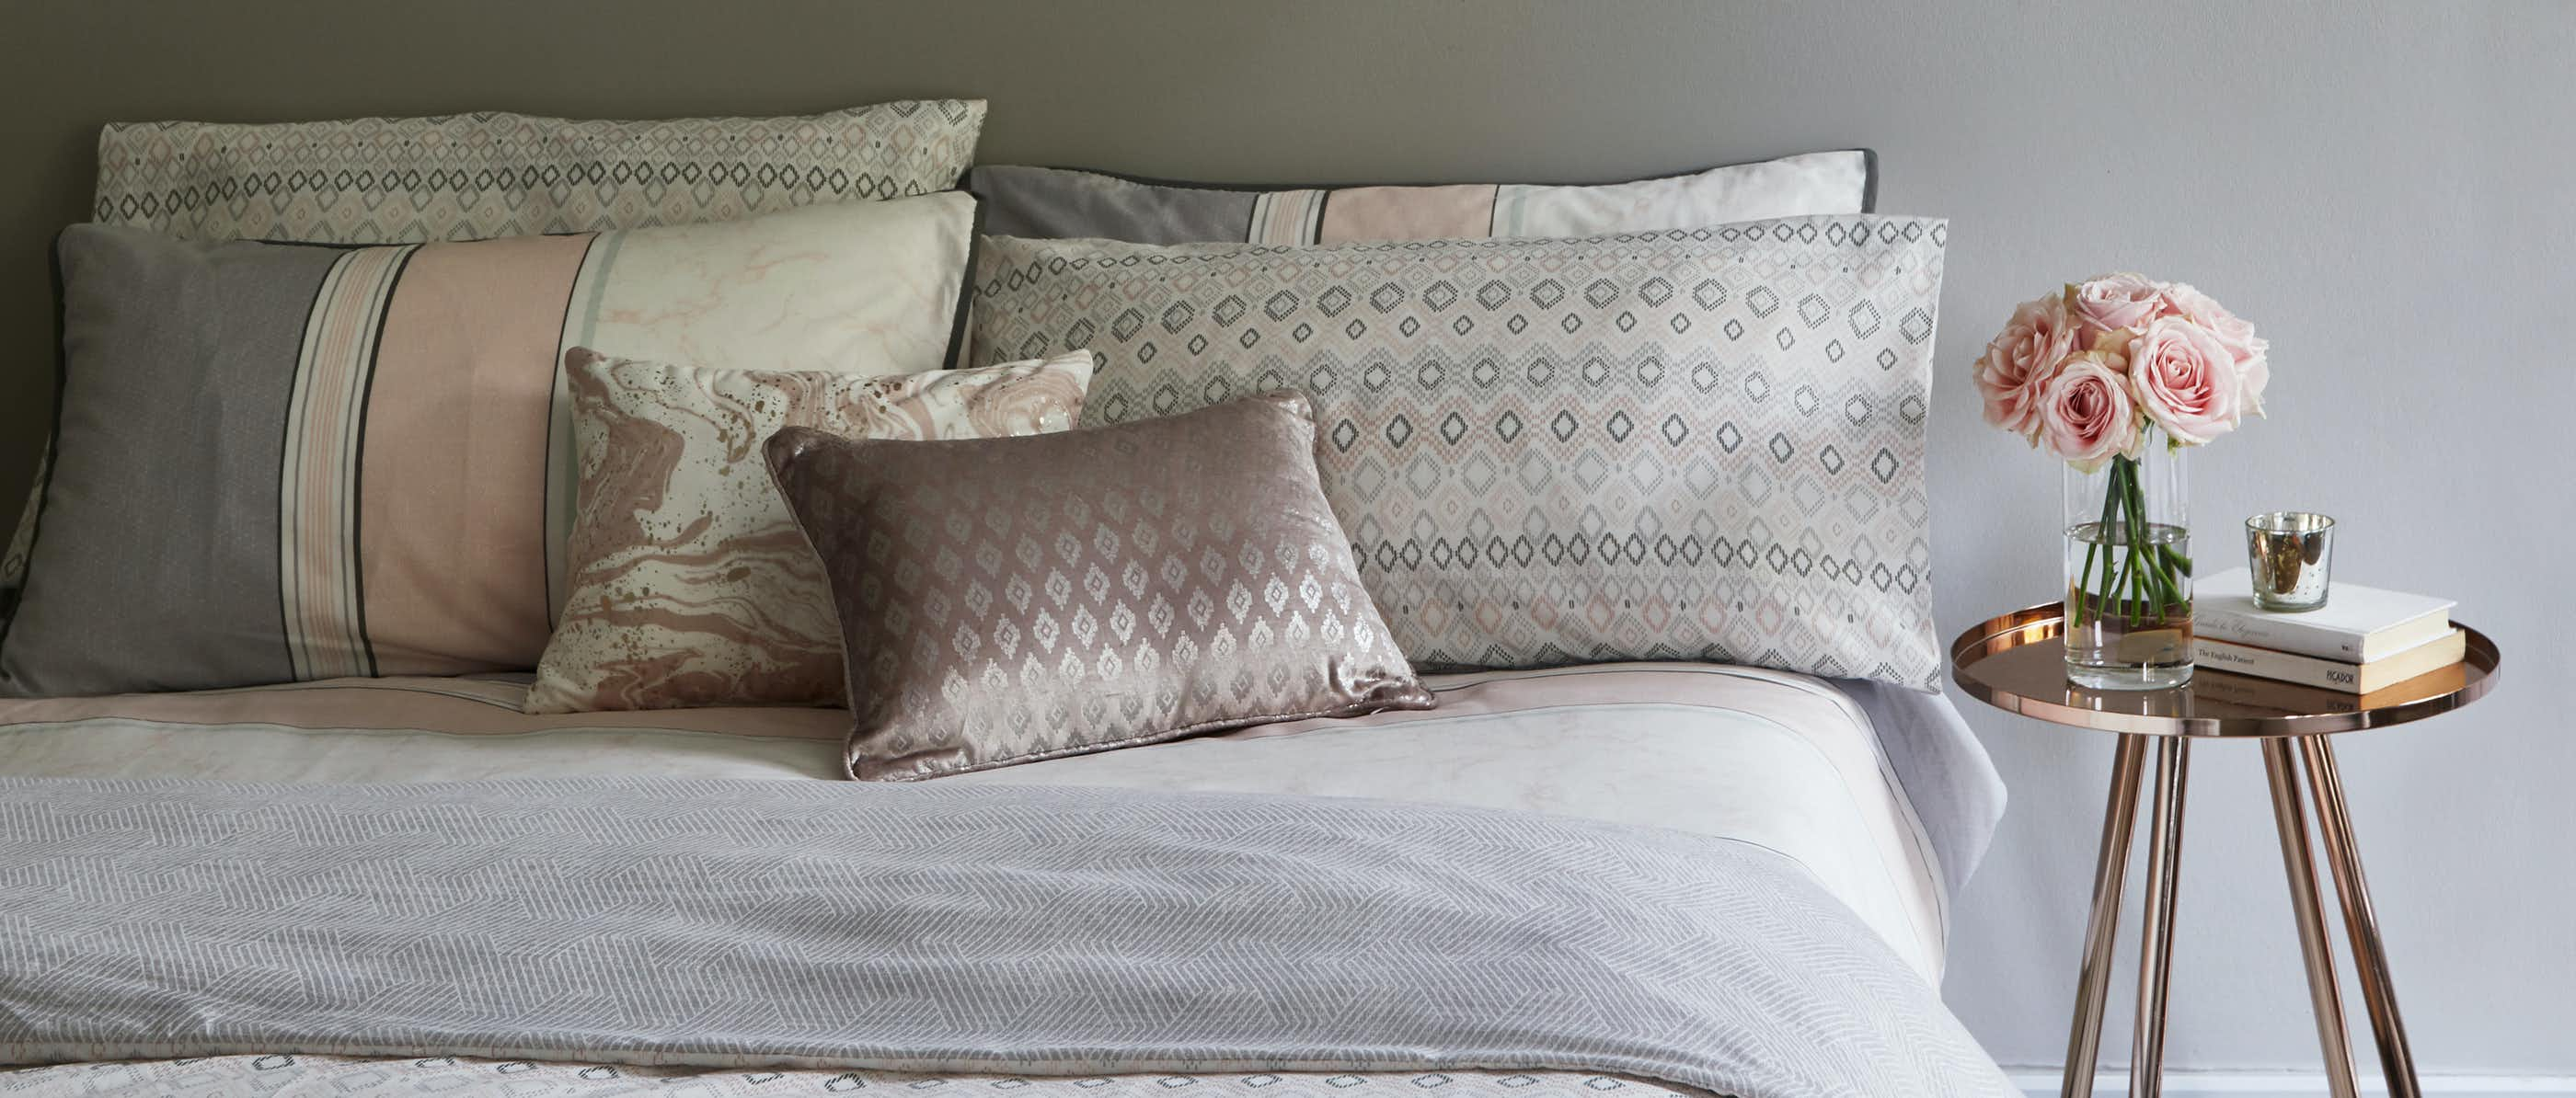 The Bedroom Furnishing Guide